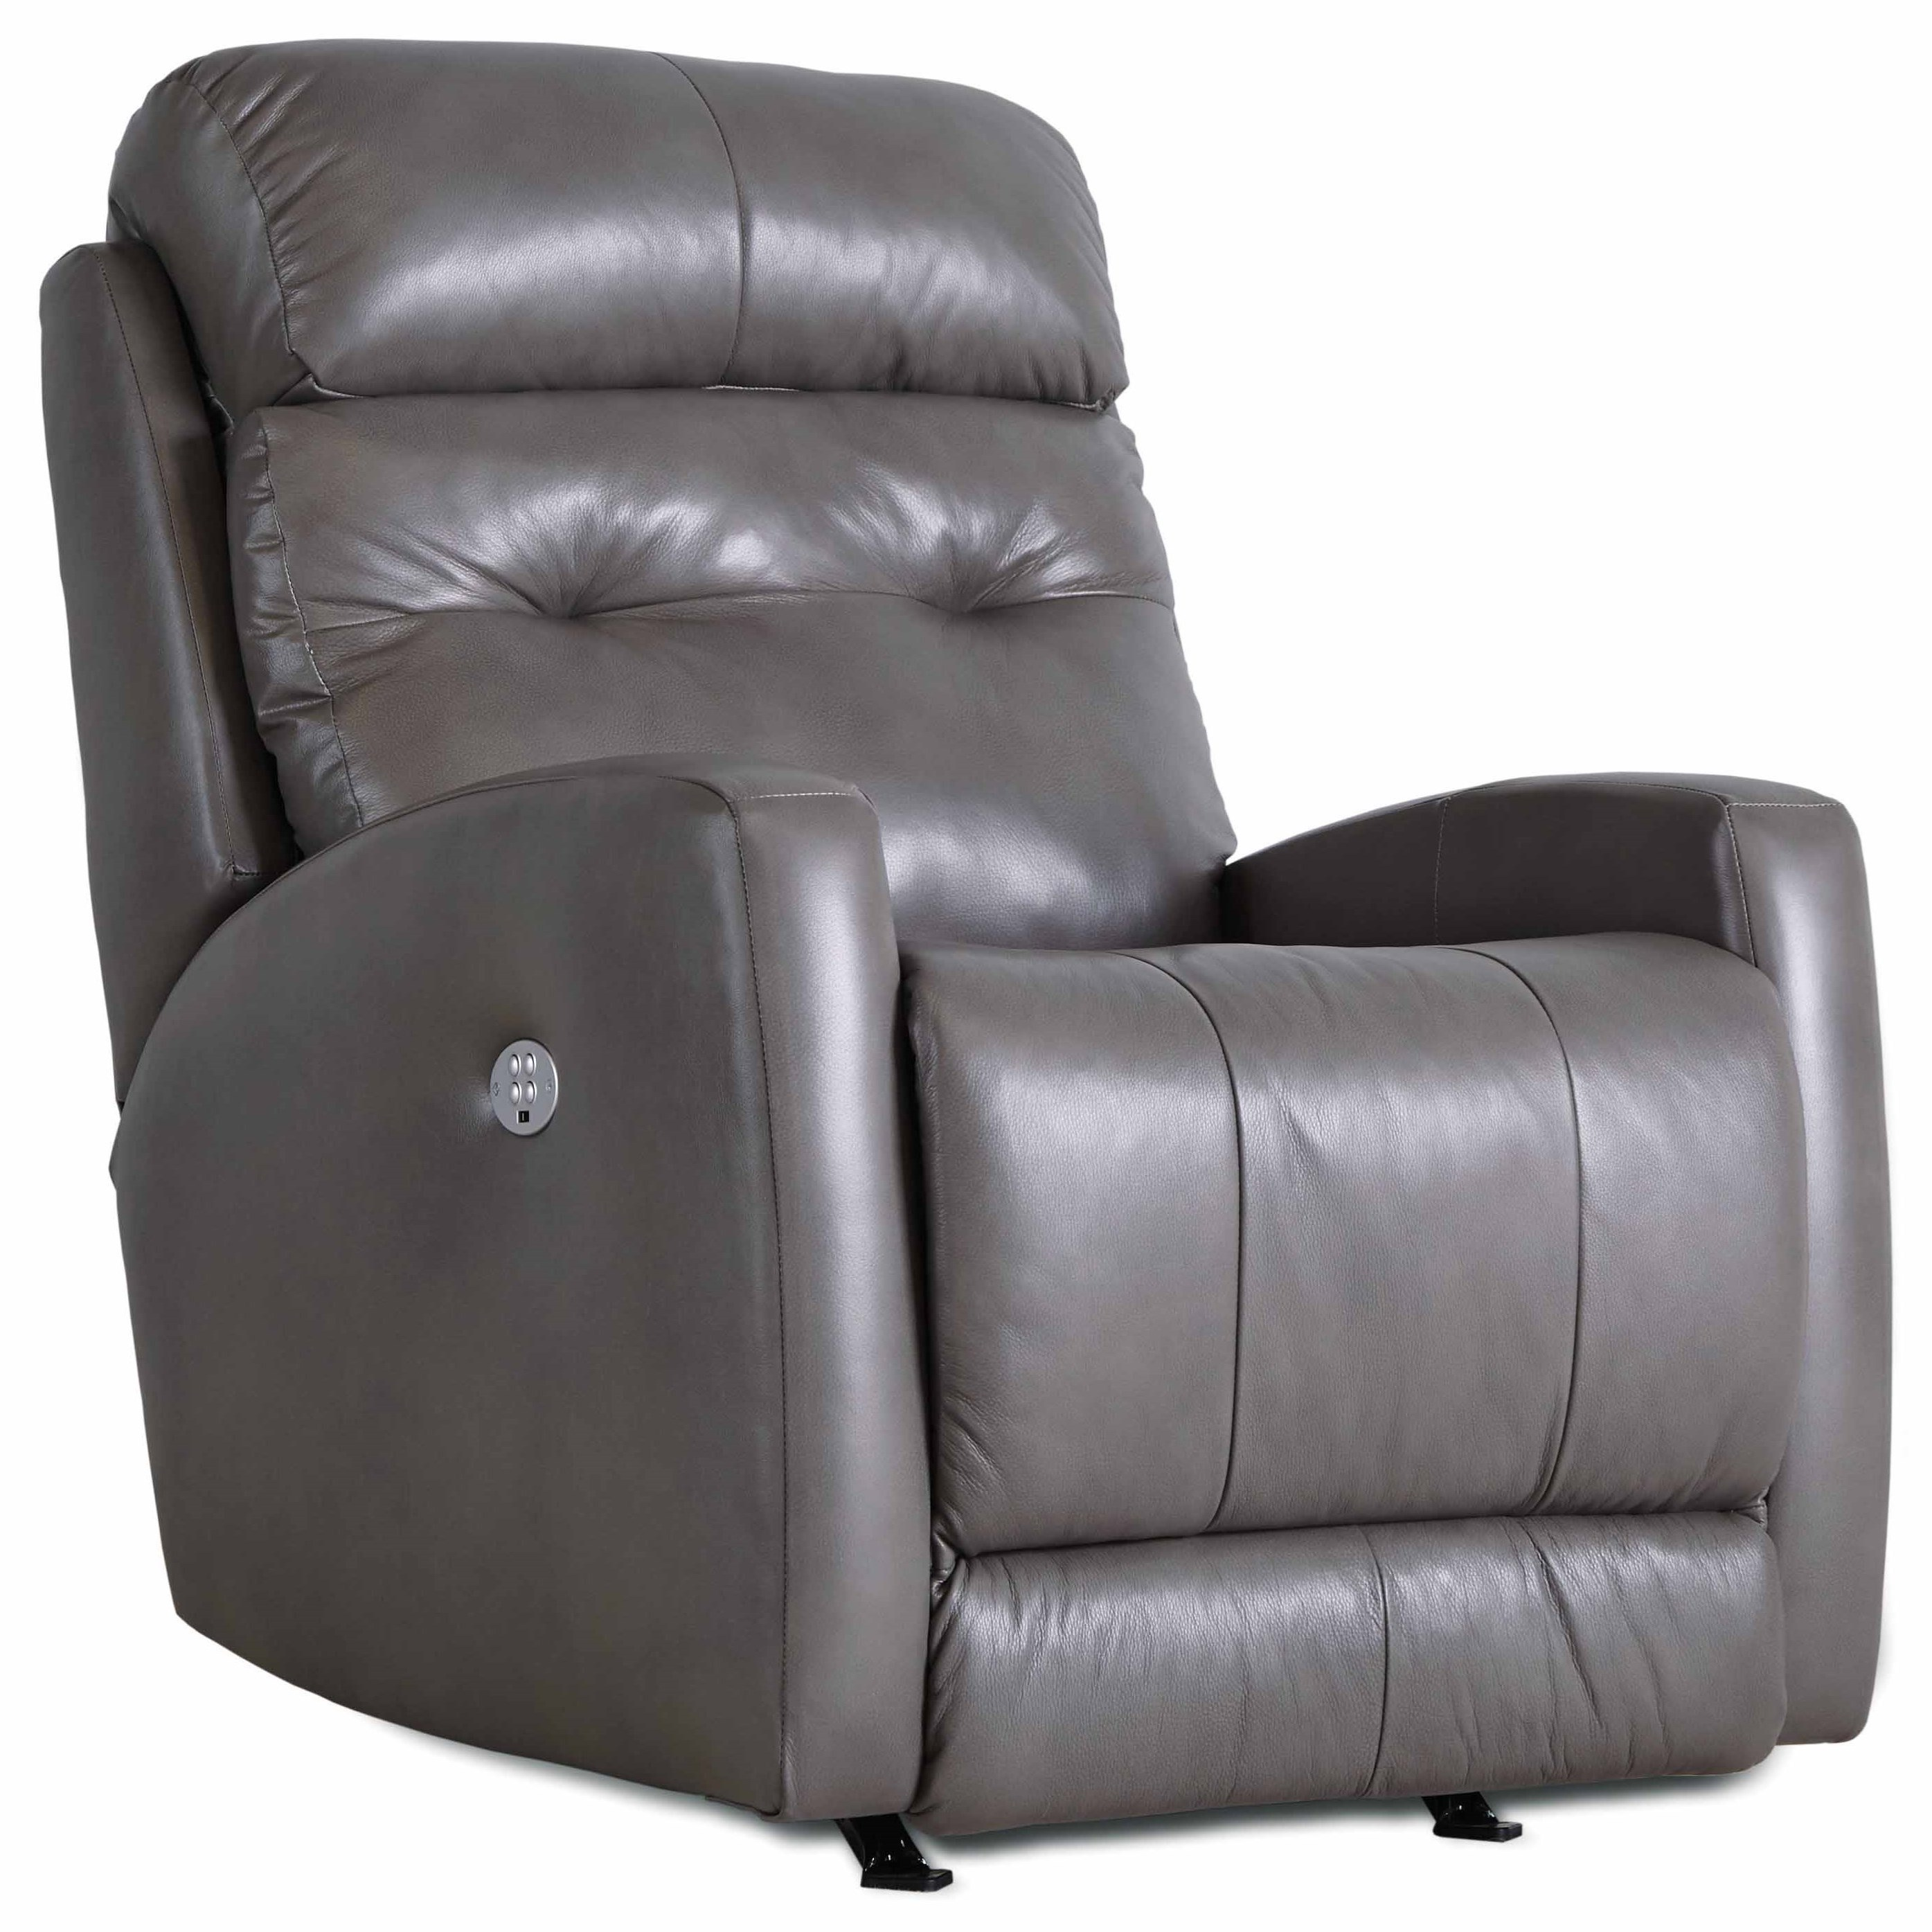 lay flat recliner chairs bar height patio table and southern motion bank shot layflat gallery furniture